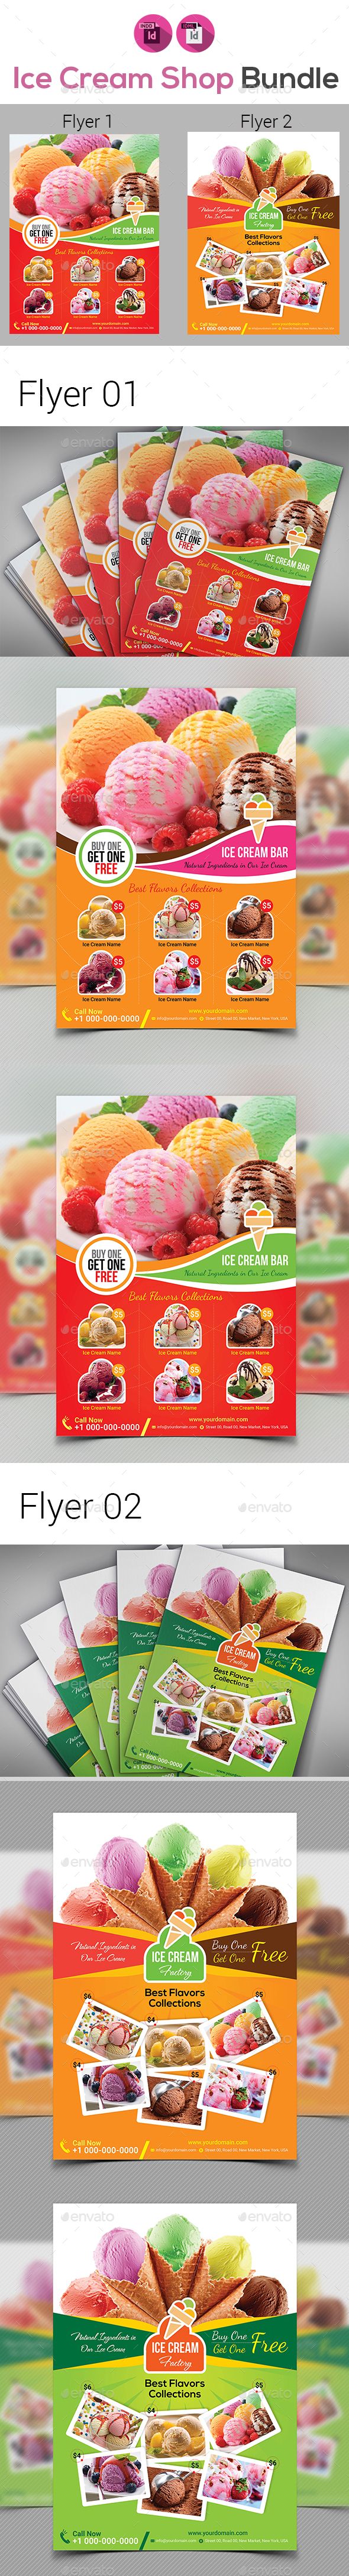 Ice Cream Shop Flyers Bundle - Flyers Print Templates